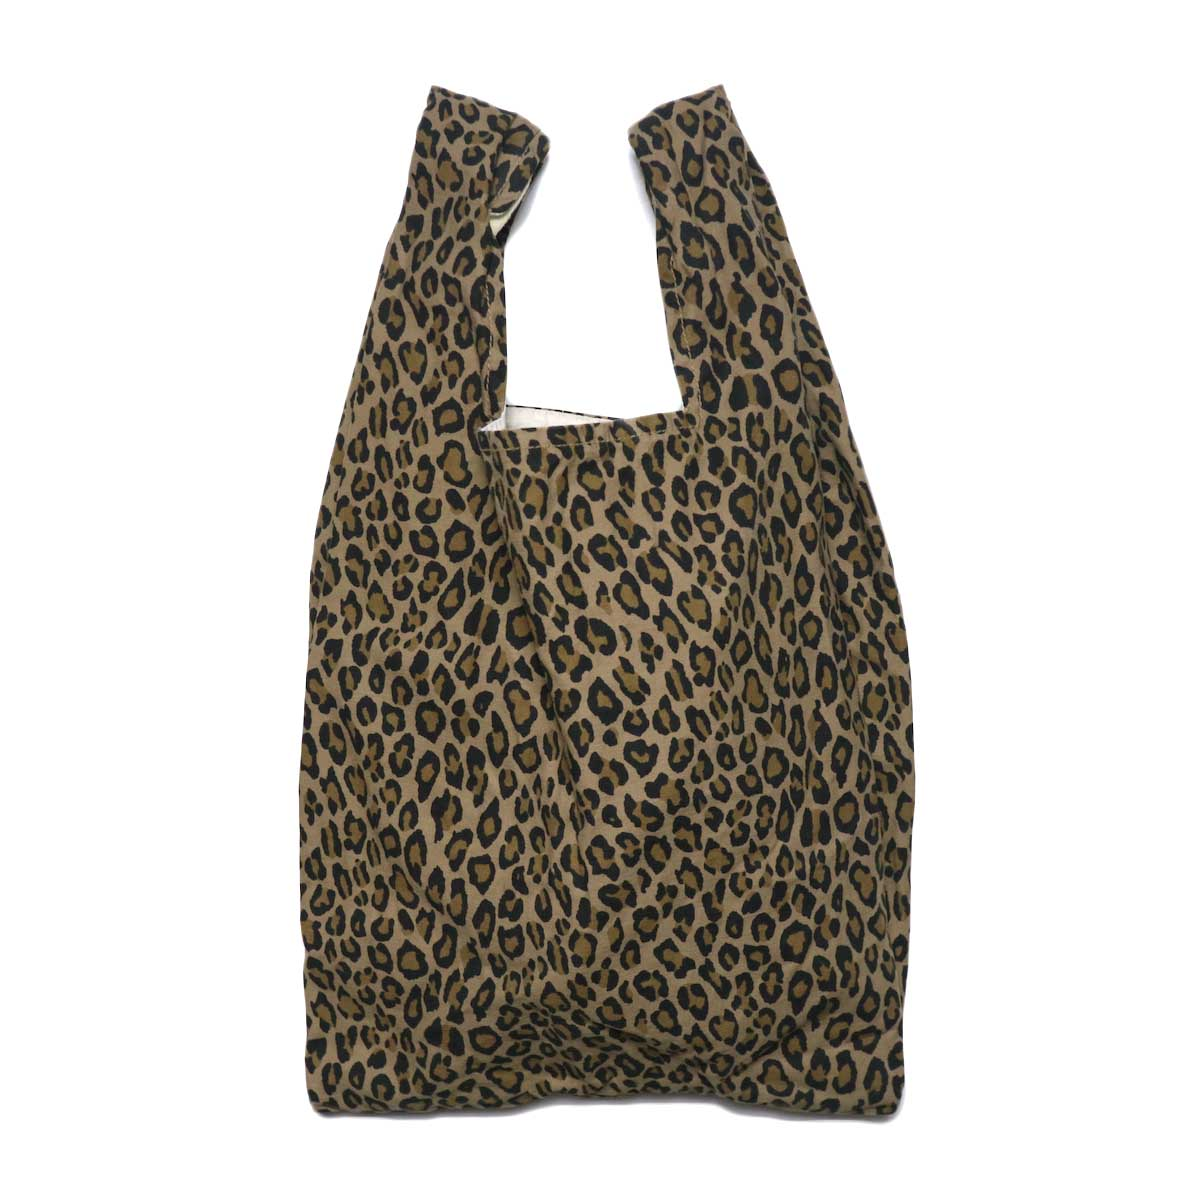 MASTER & Co. / ECO BAG SMALL (Leopard)